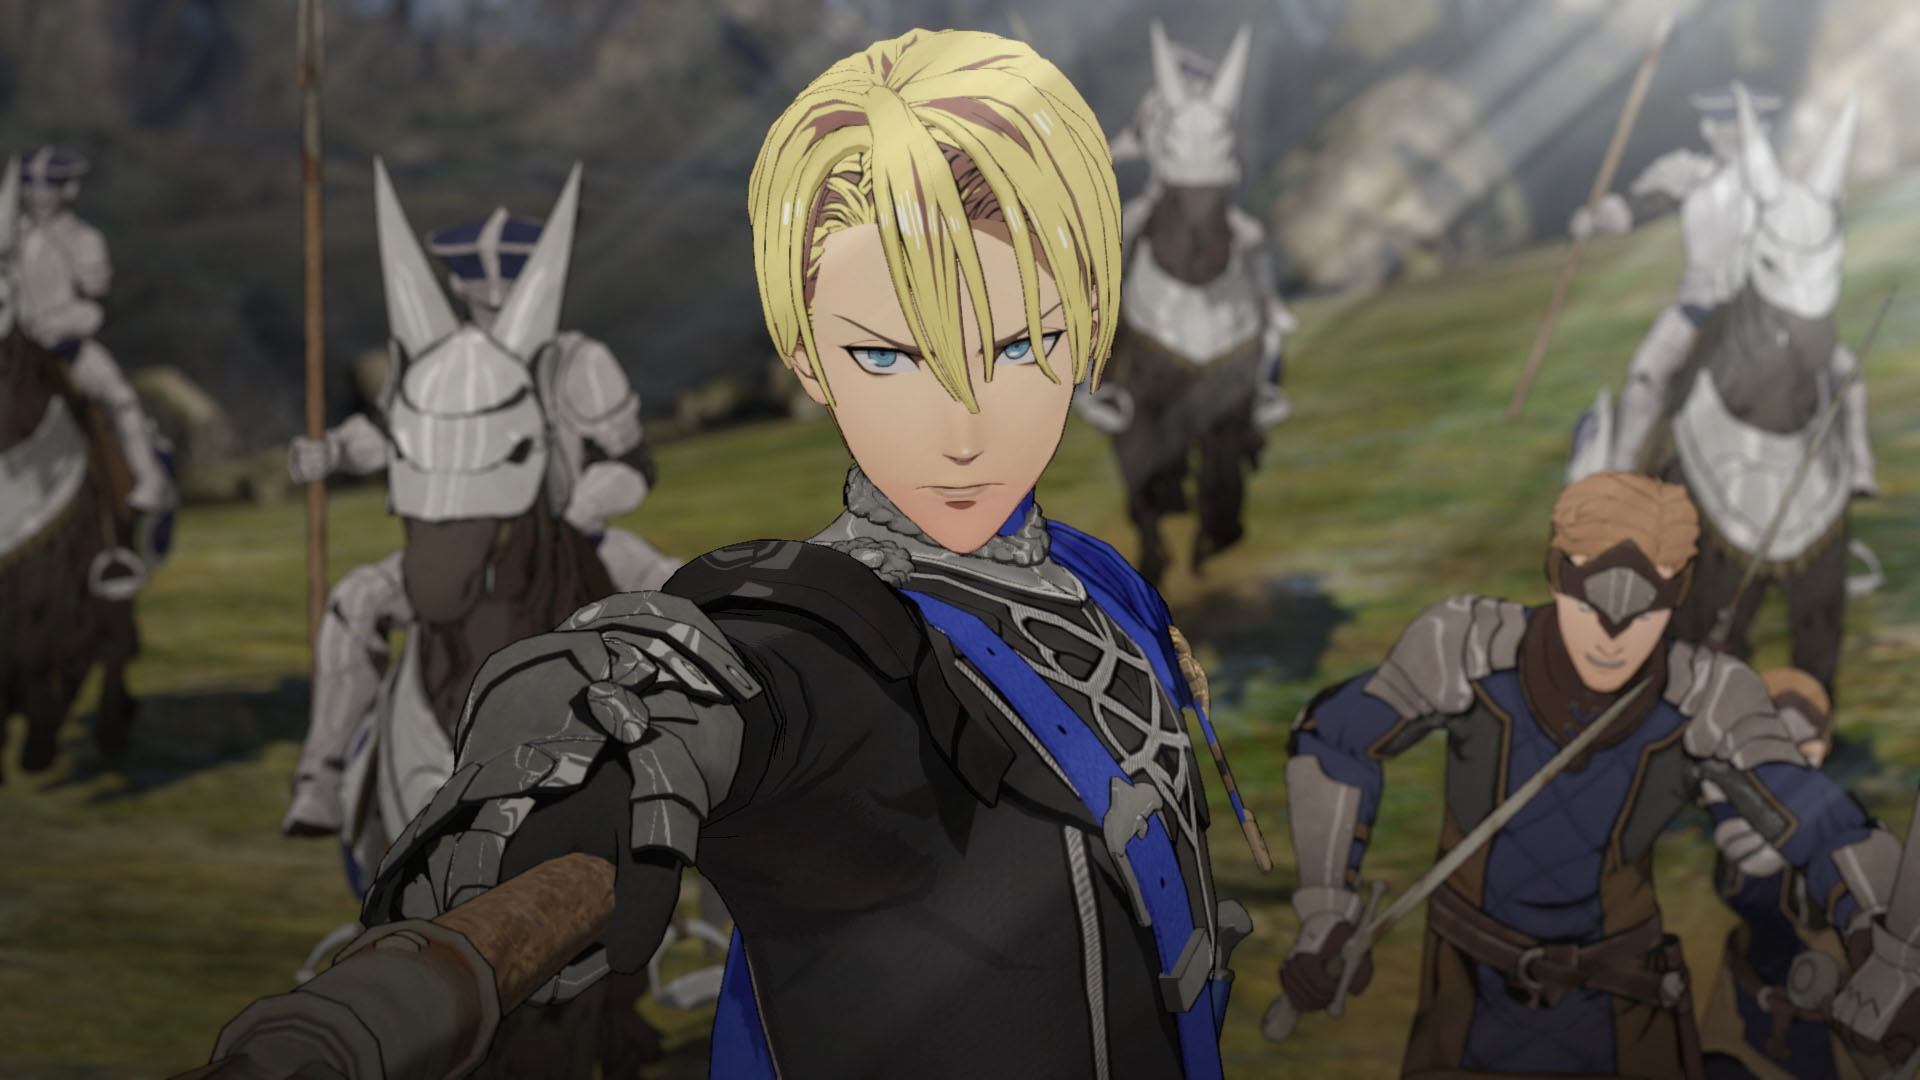 Fire Emblem: Three Houses Gets New Information About